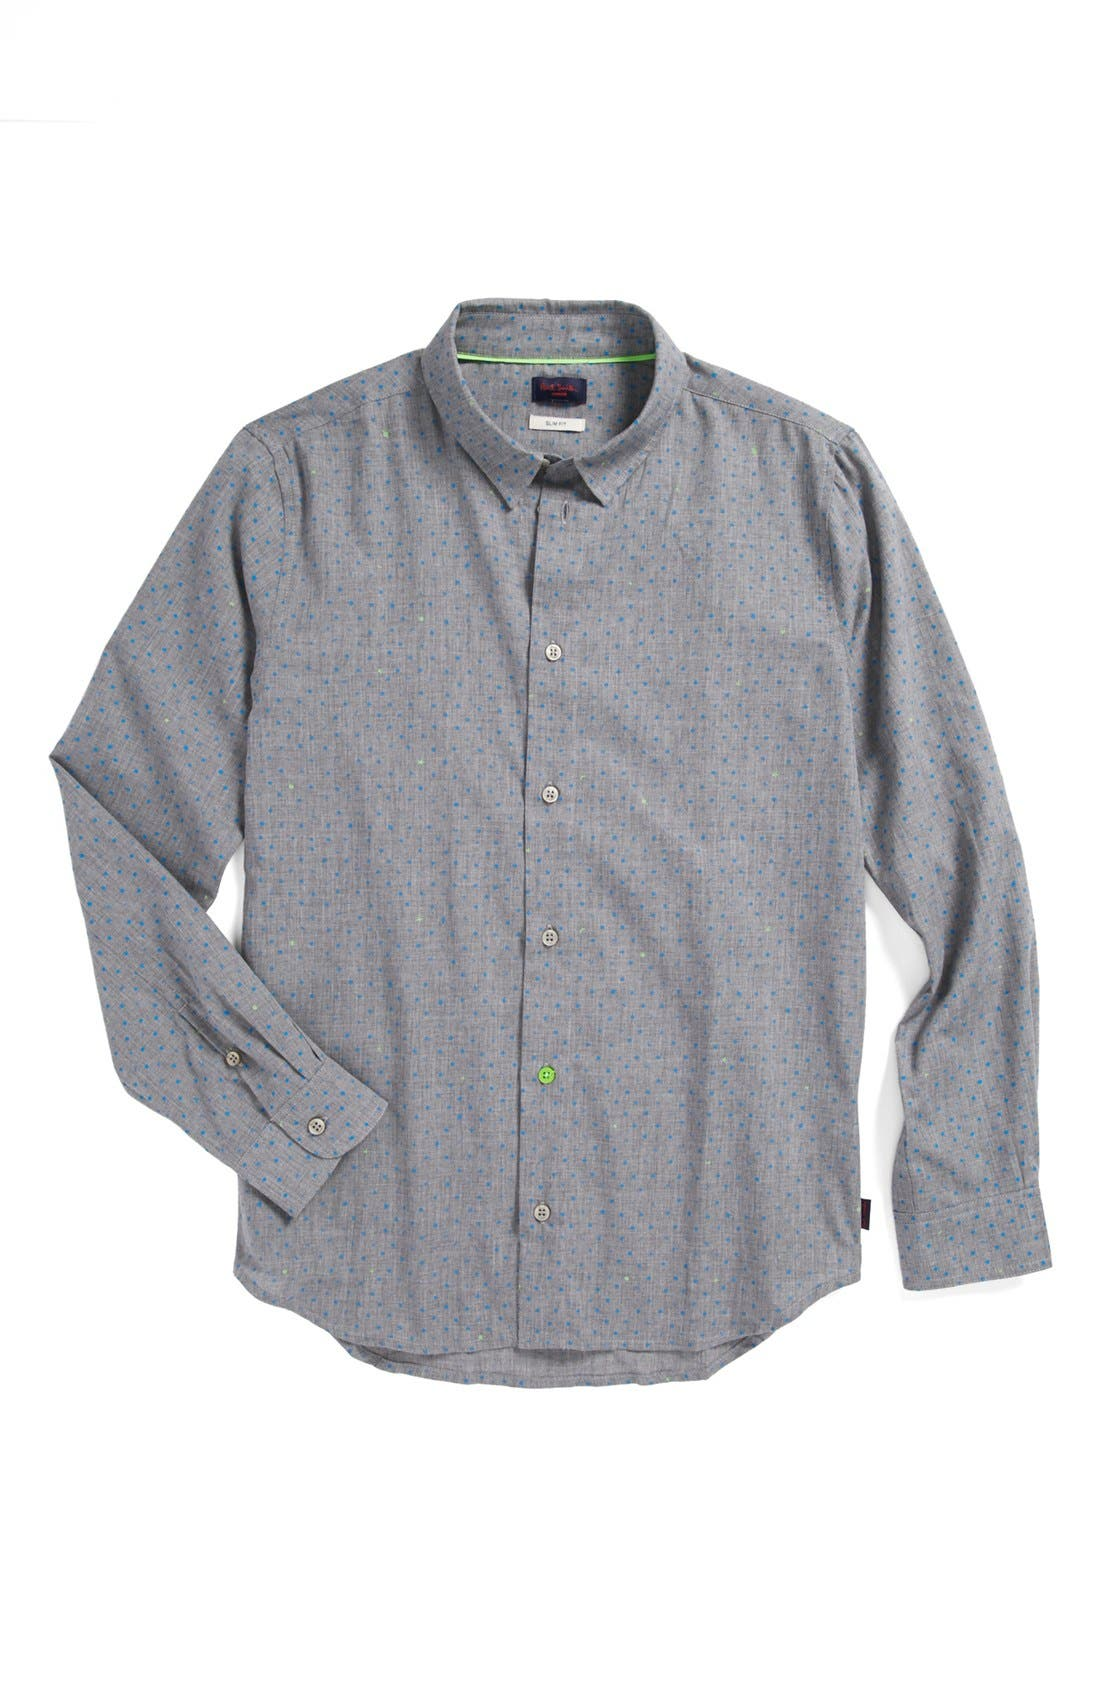 Alternate Image 1 Selected - Paul Smith Junior 'Esteban' Sport Shirt (Toddler Boys, Little Boys & Big Boys)